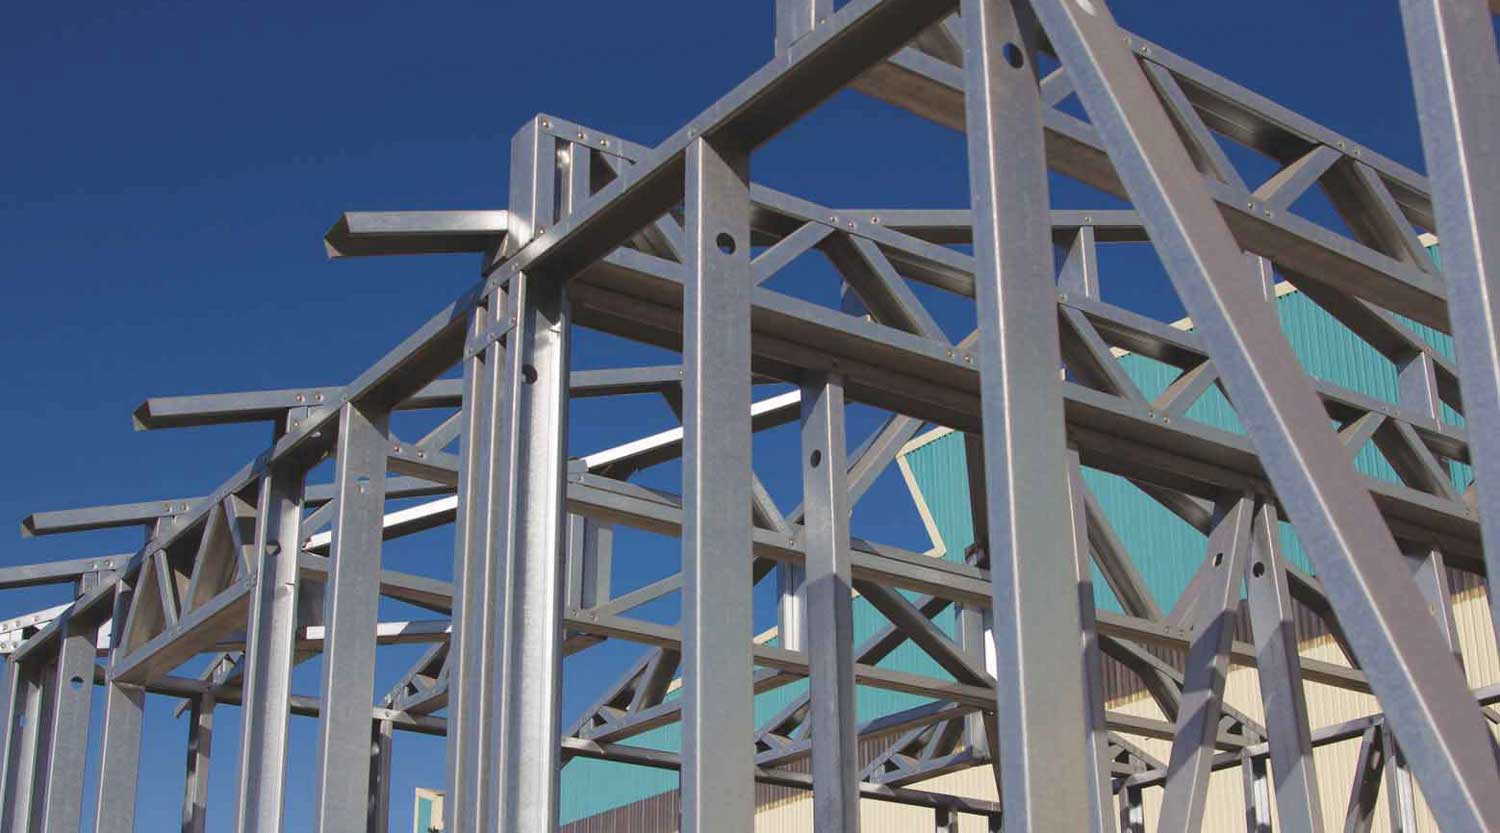 Clotan Steel For Lightweight Steel For Trusses Walls